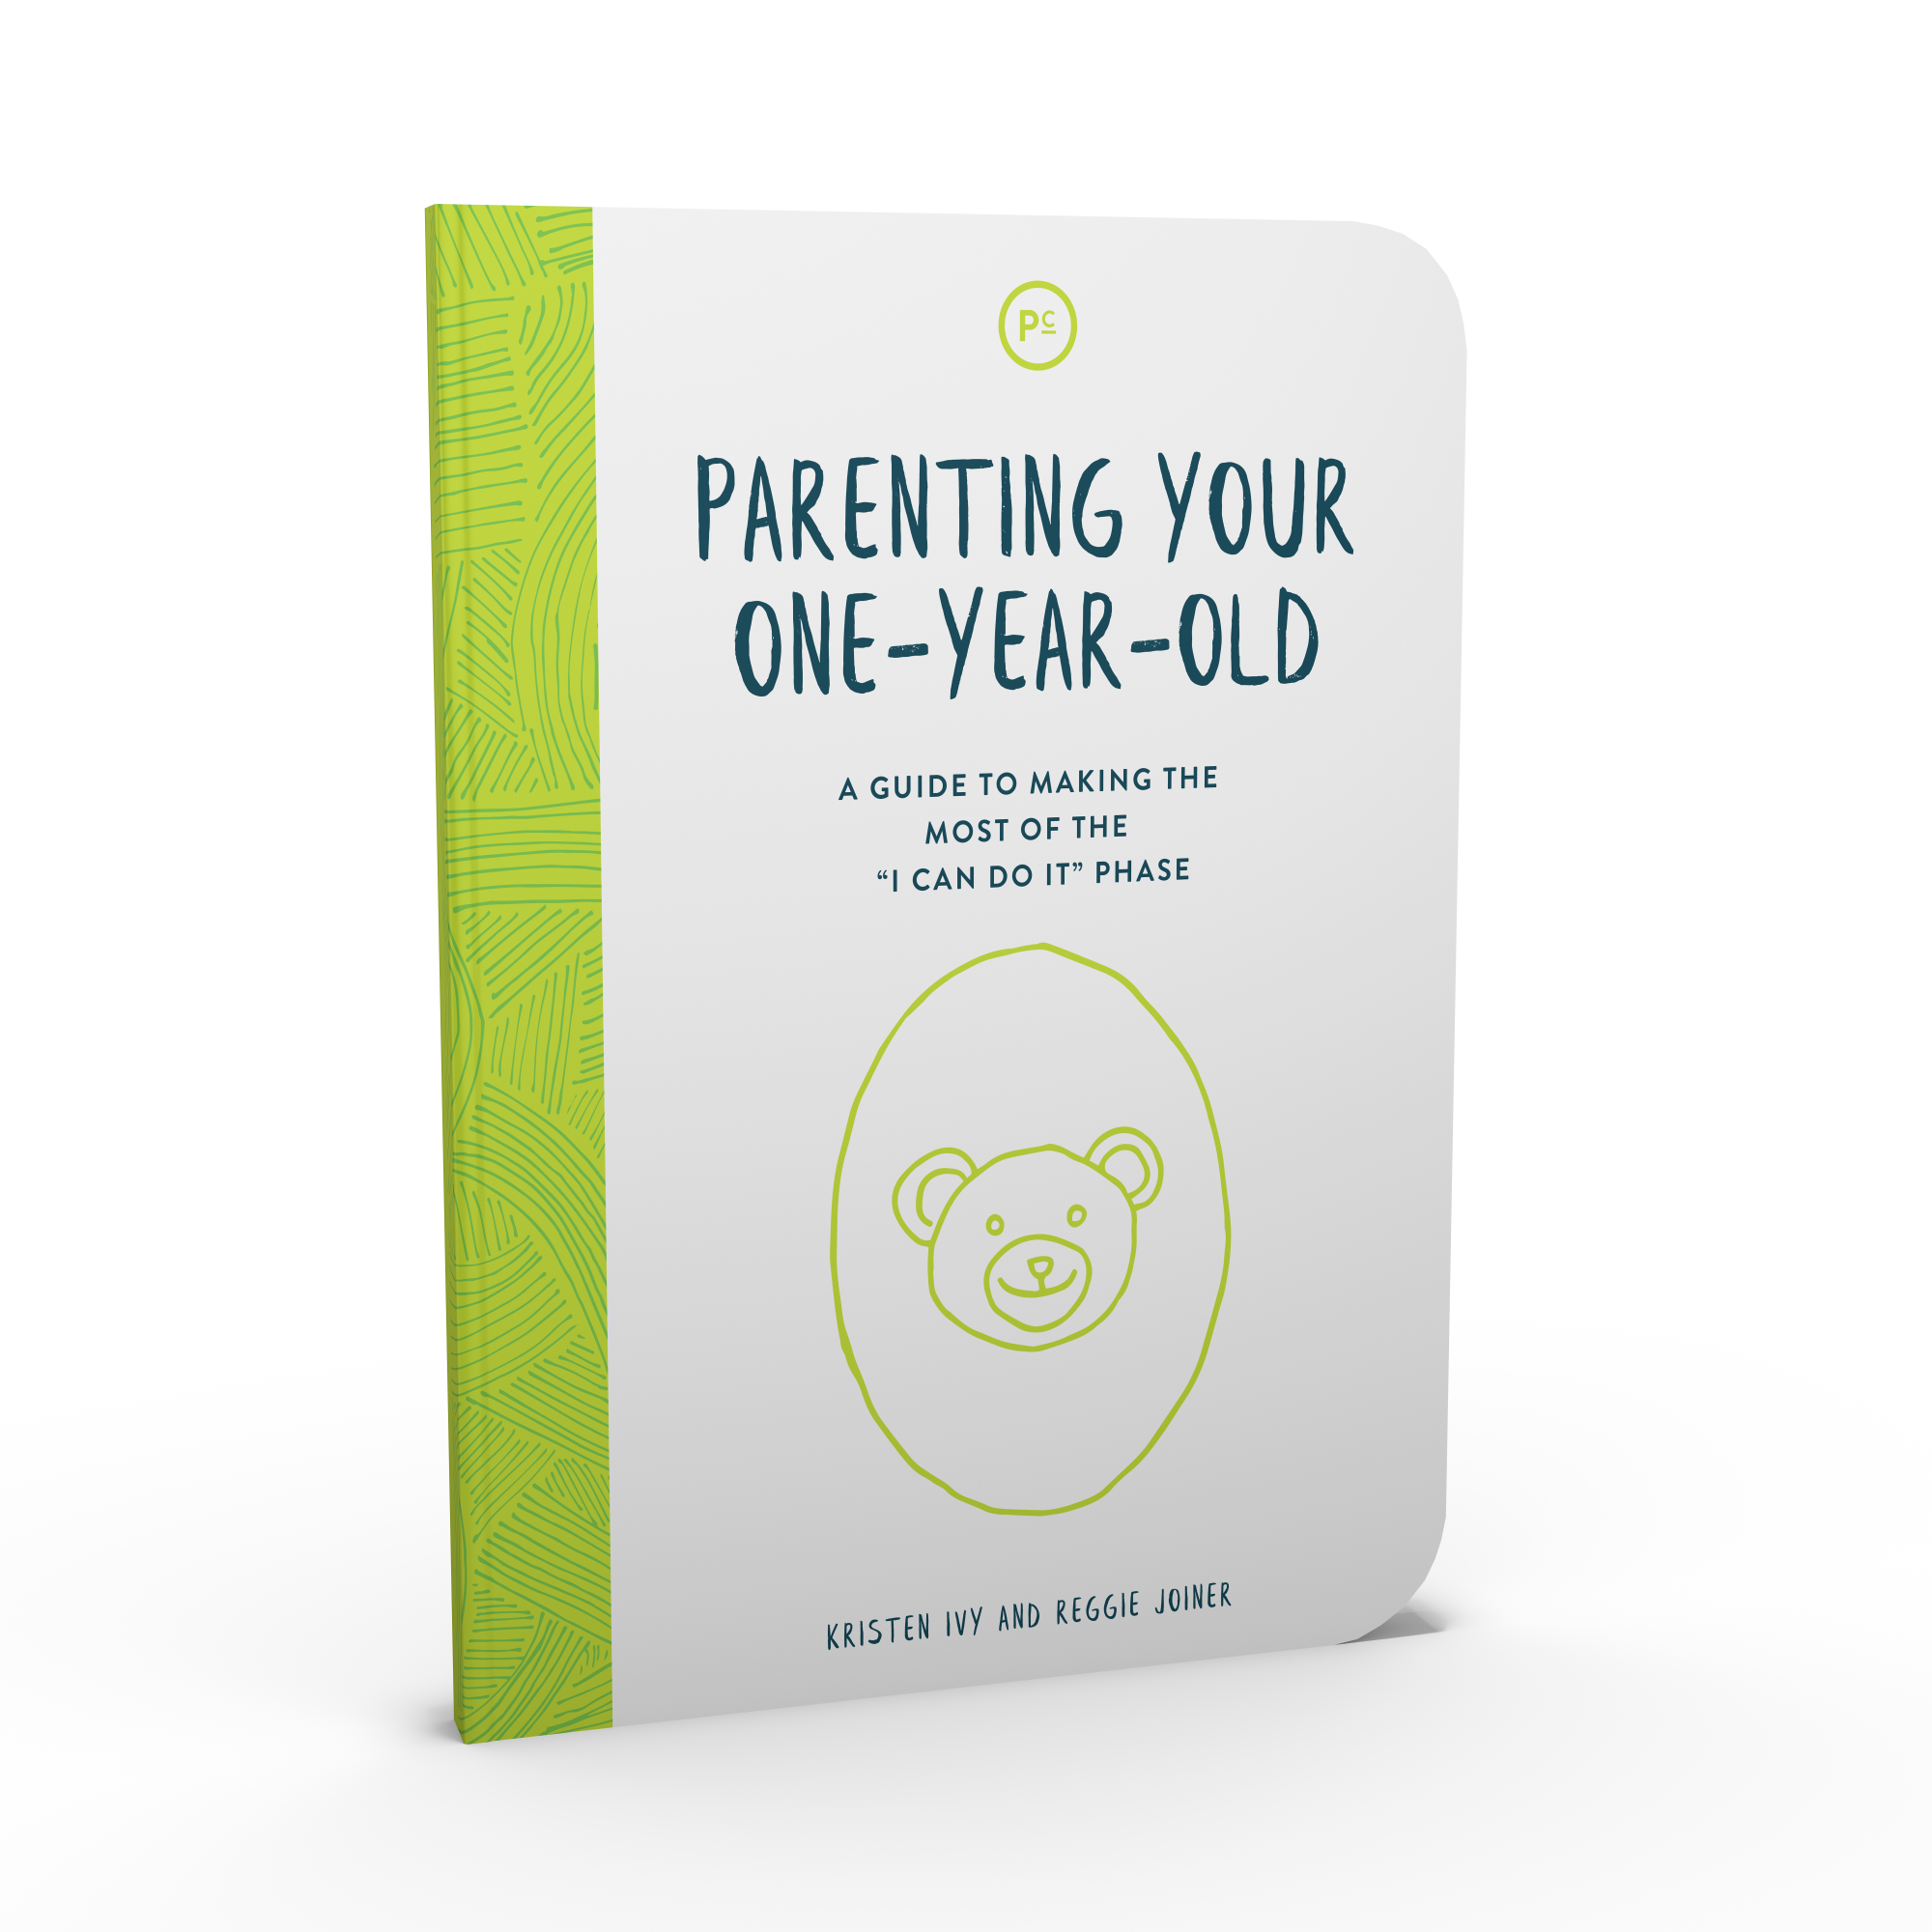 Parenting Your One-Year-Old